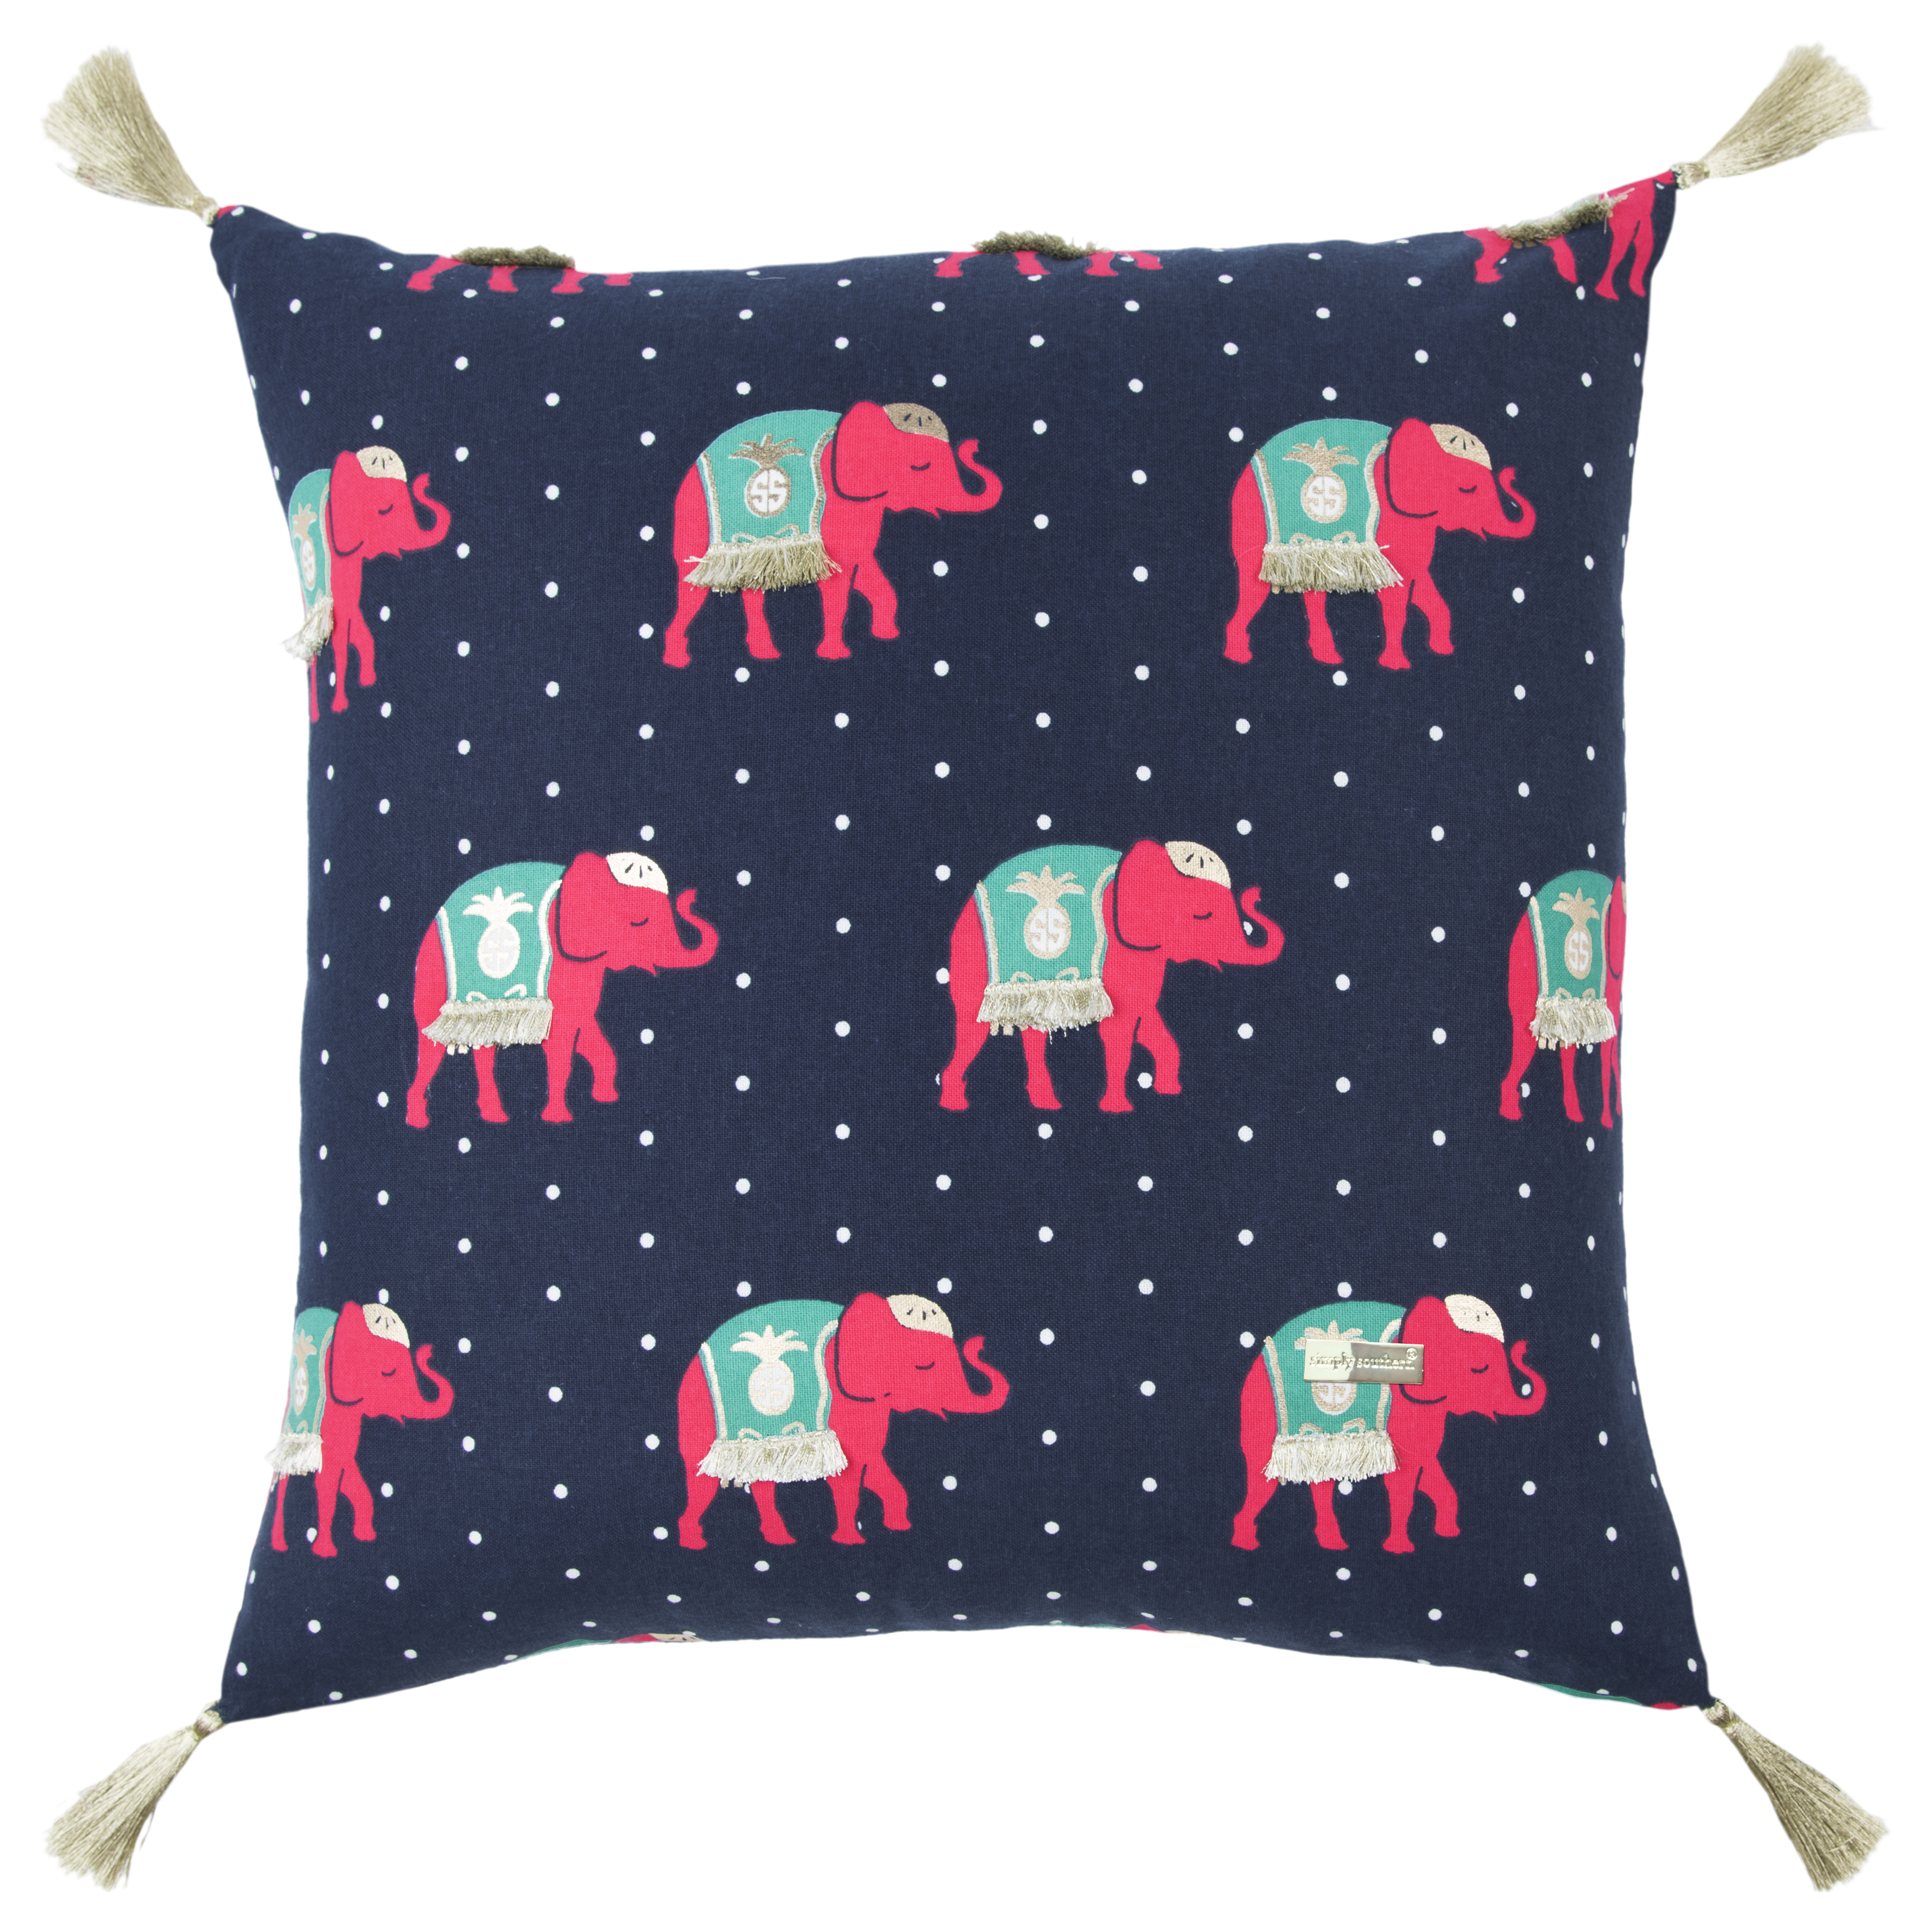 Rizzy Home Simply Southern pillow